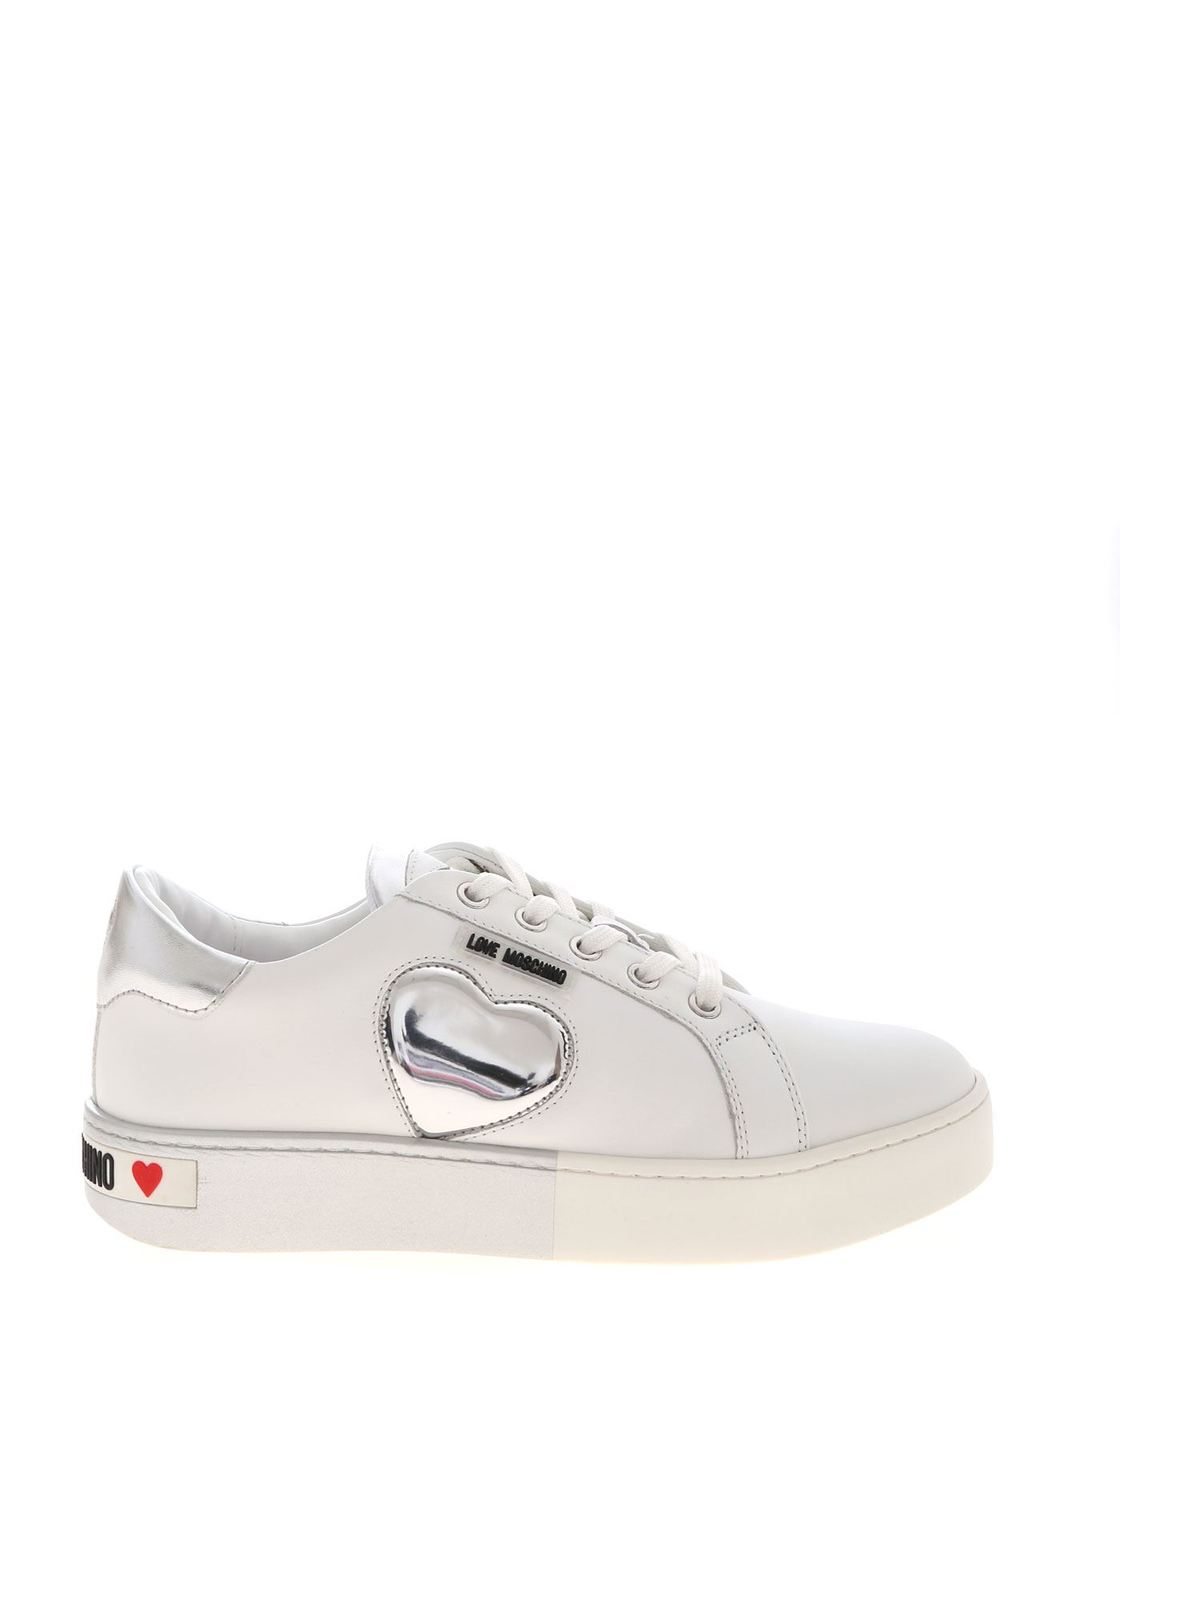 Love Moschino Sneakers SNEAKERS IN WHITE AND SILVER